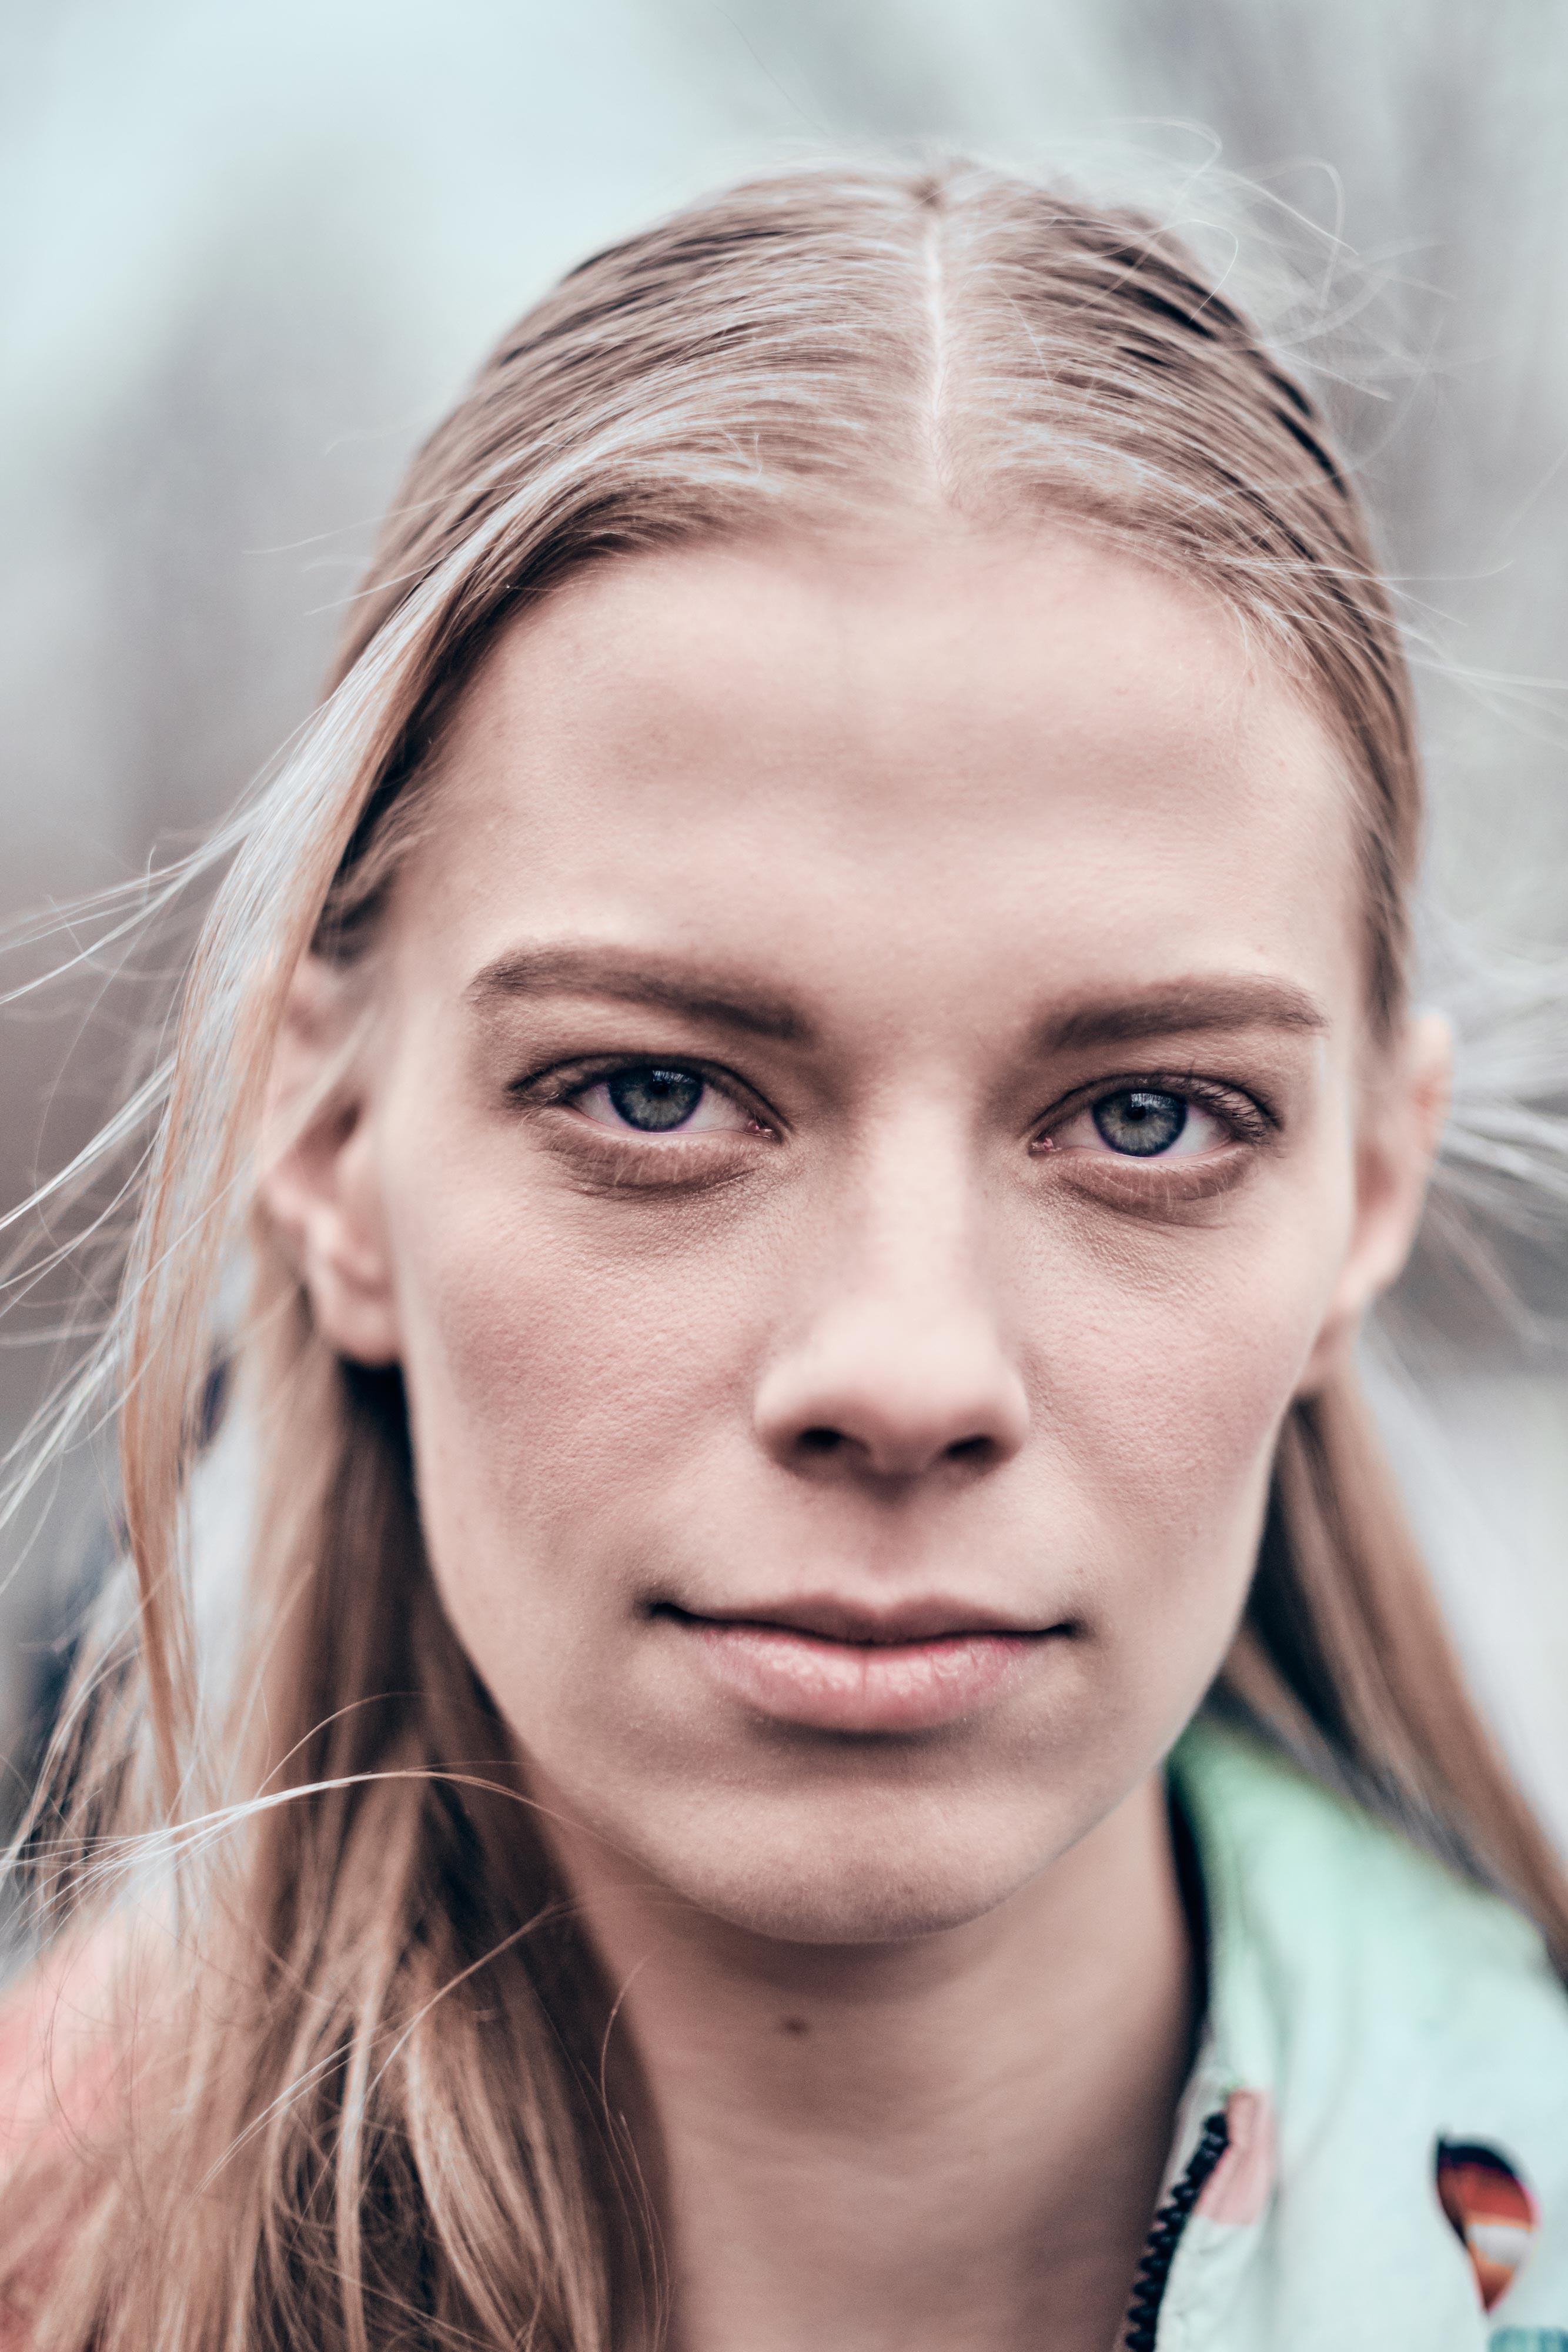 The 30-year old daughter of father (?) and mother(?) Lexi Boling in 2021 photo. Lexi Boling earned a  million dollar salary - leaving the net worth at 1 million in 2021